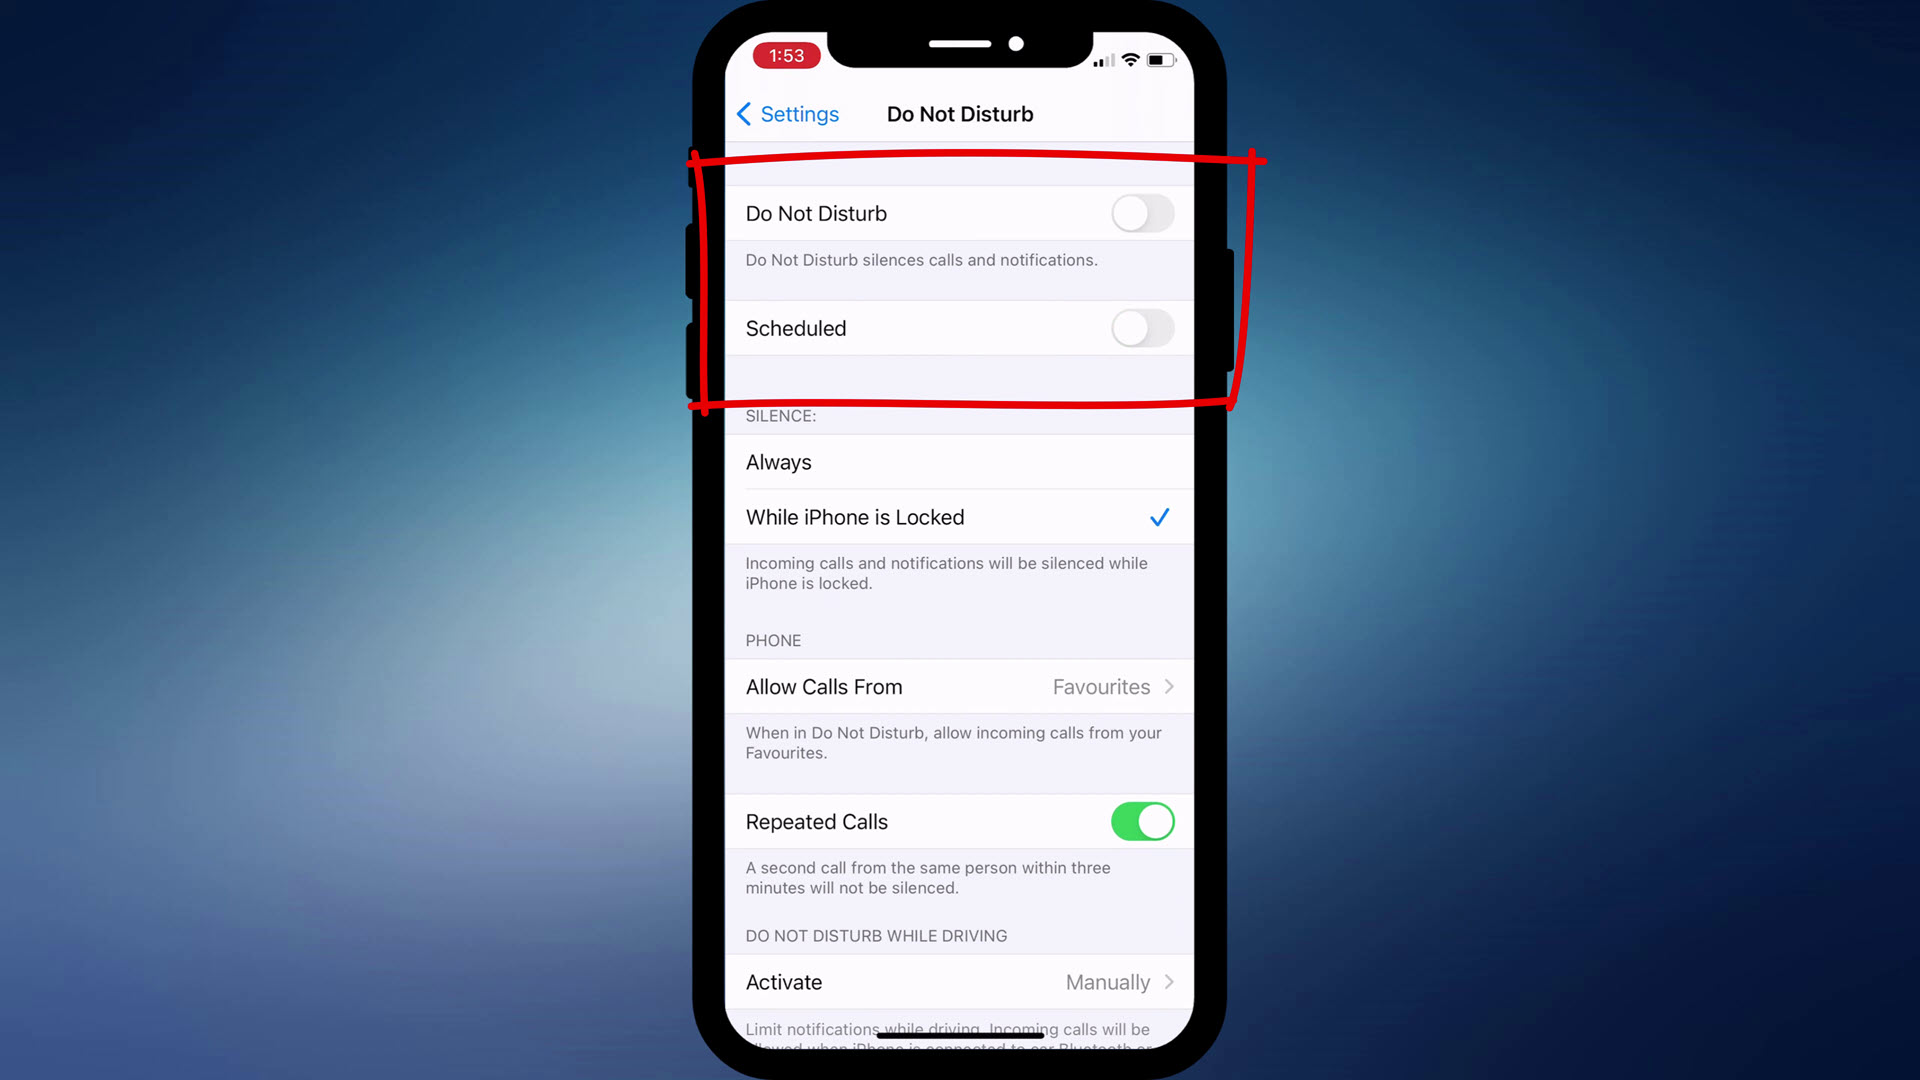 Do Not Disturb settings on iPhone